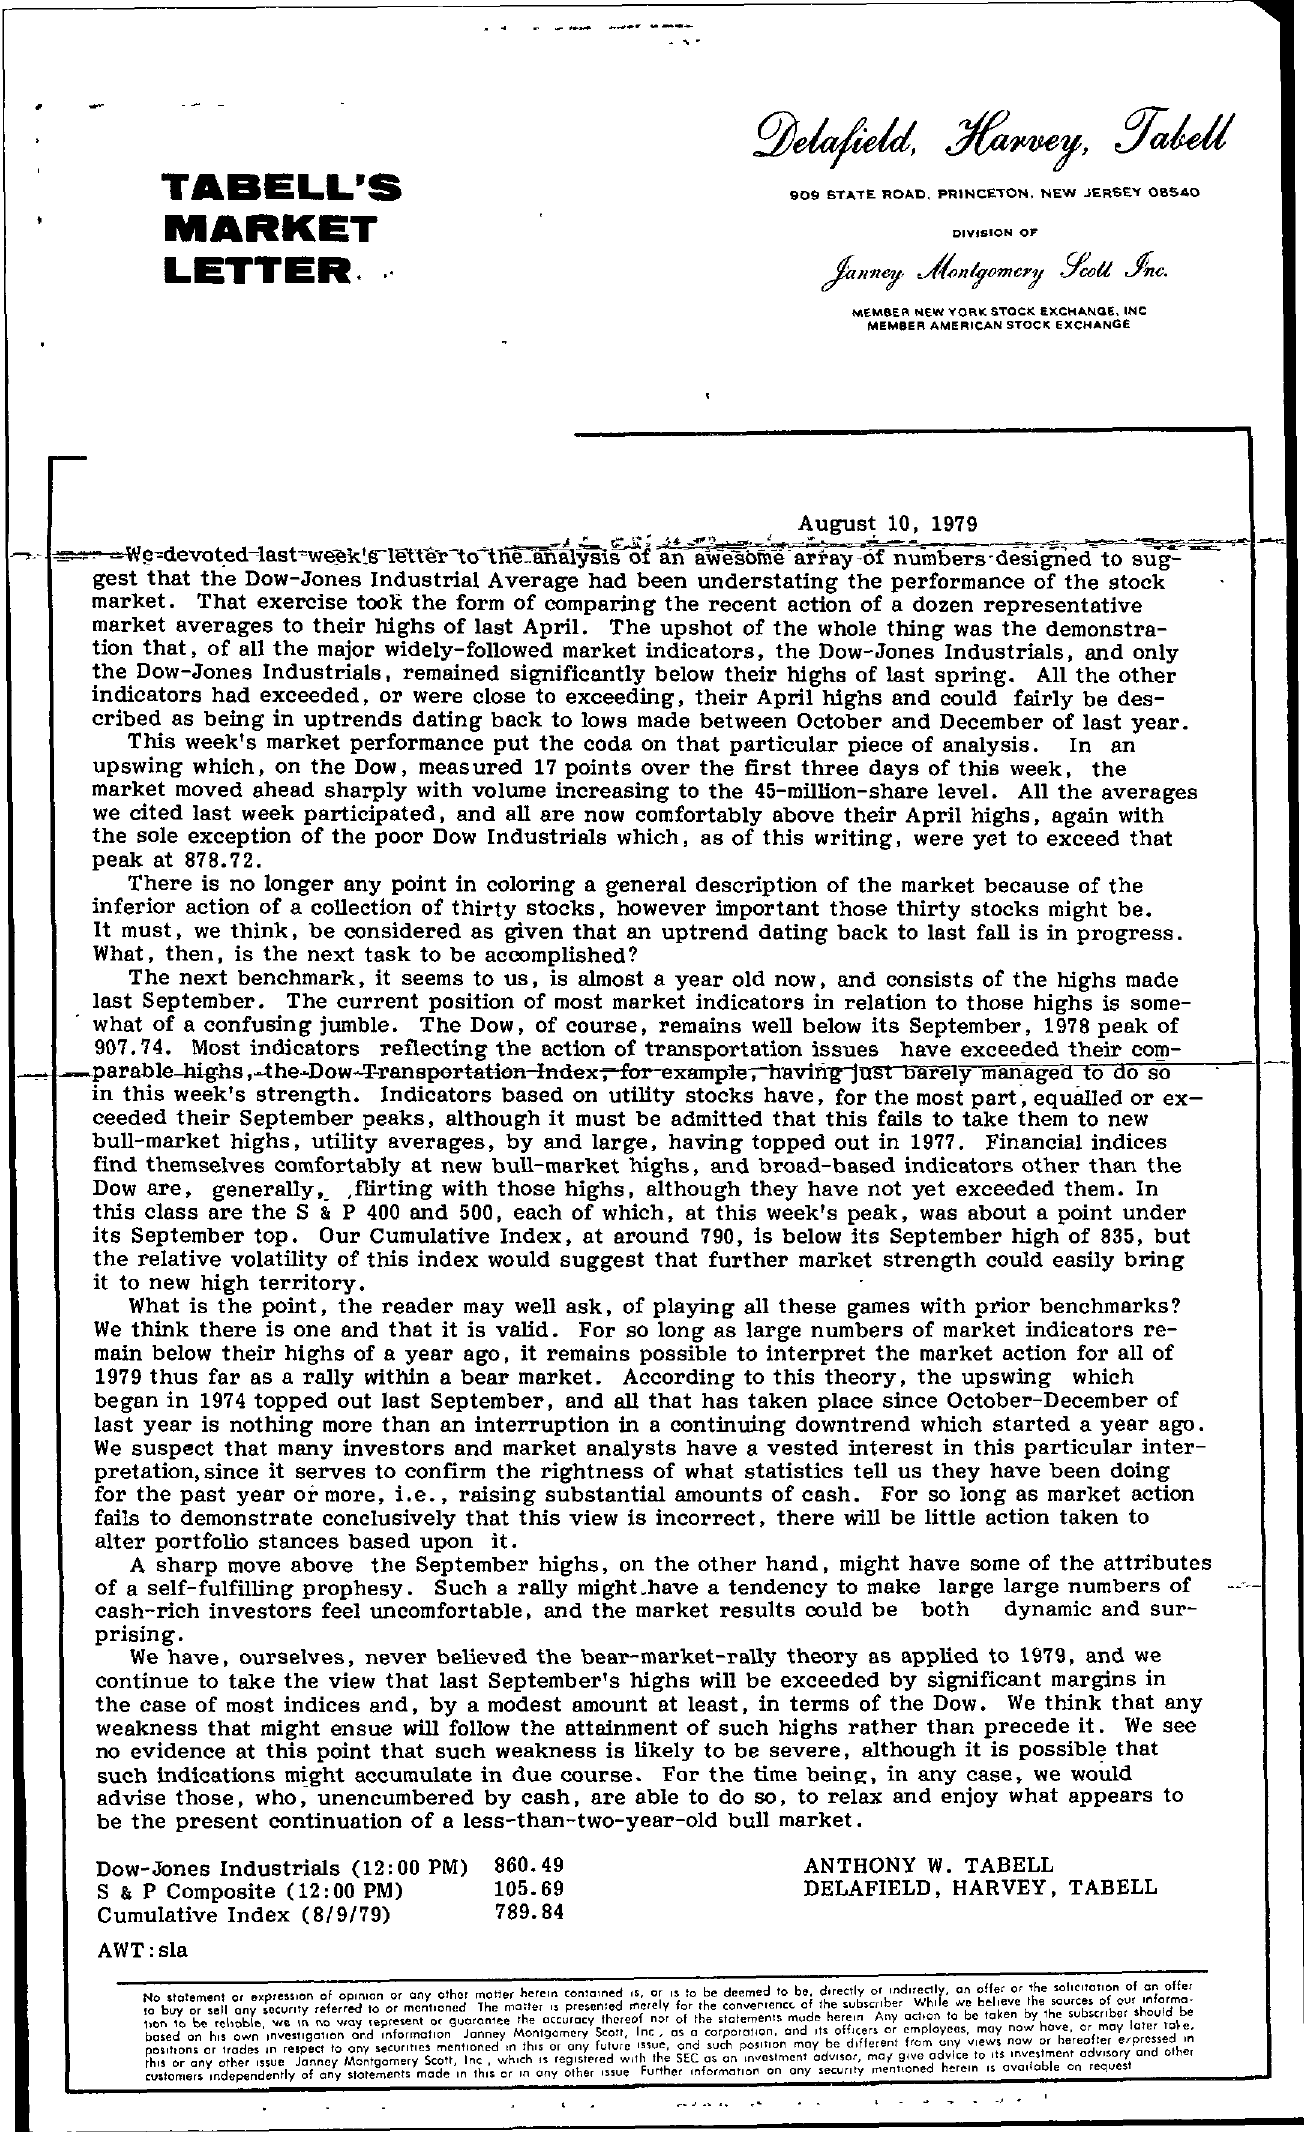 Tabell's Market Letter - August 10, 1979